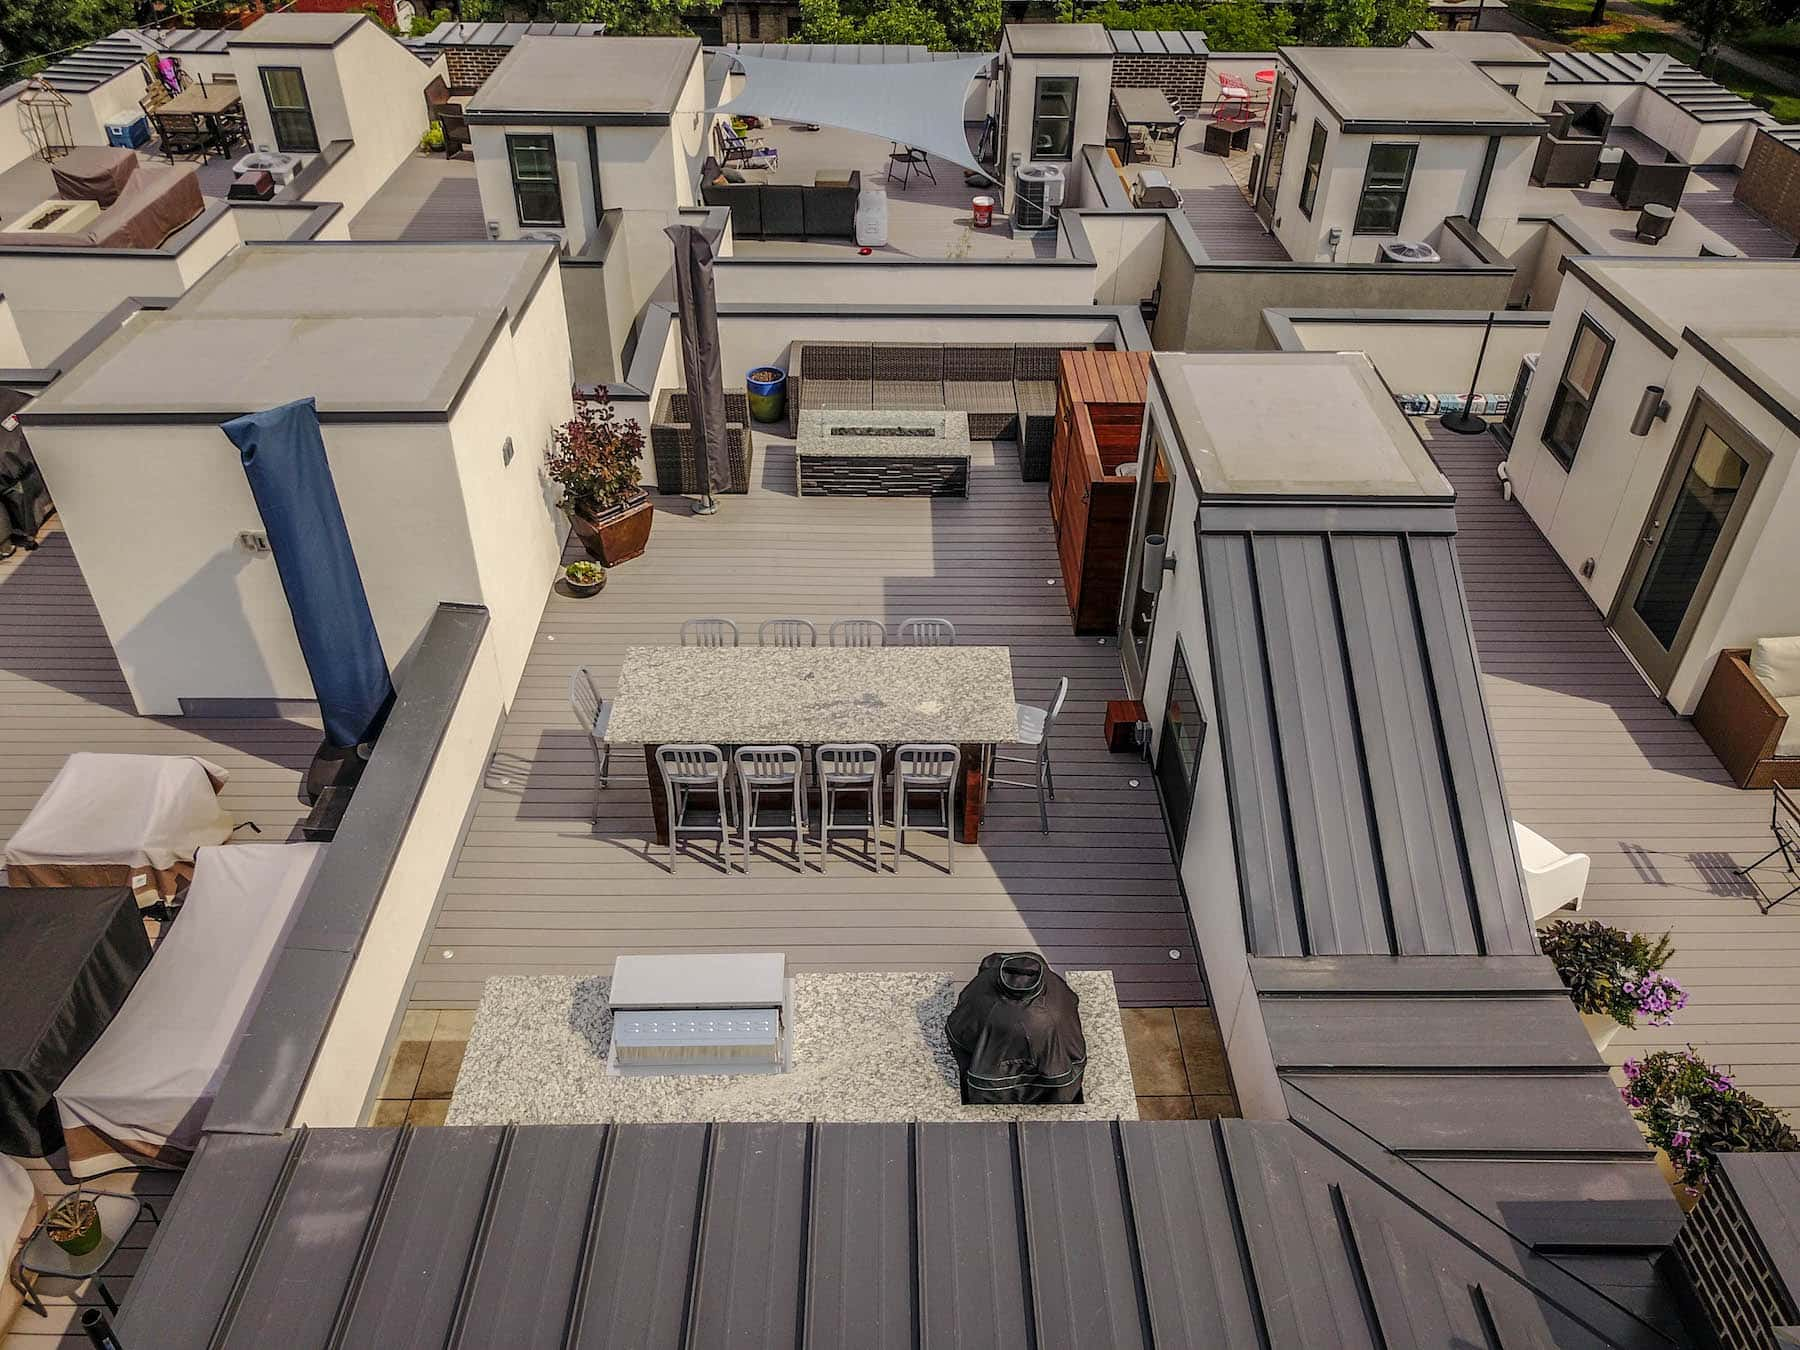 Rooftop Deck Outdoor Dining Outdoor Kitchen Fire Pit City Park Denver CO